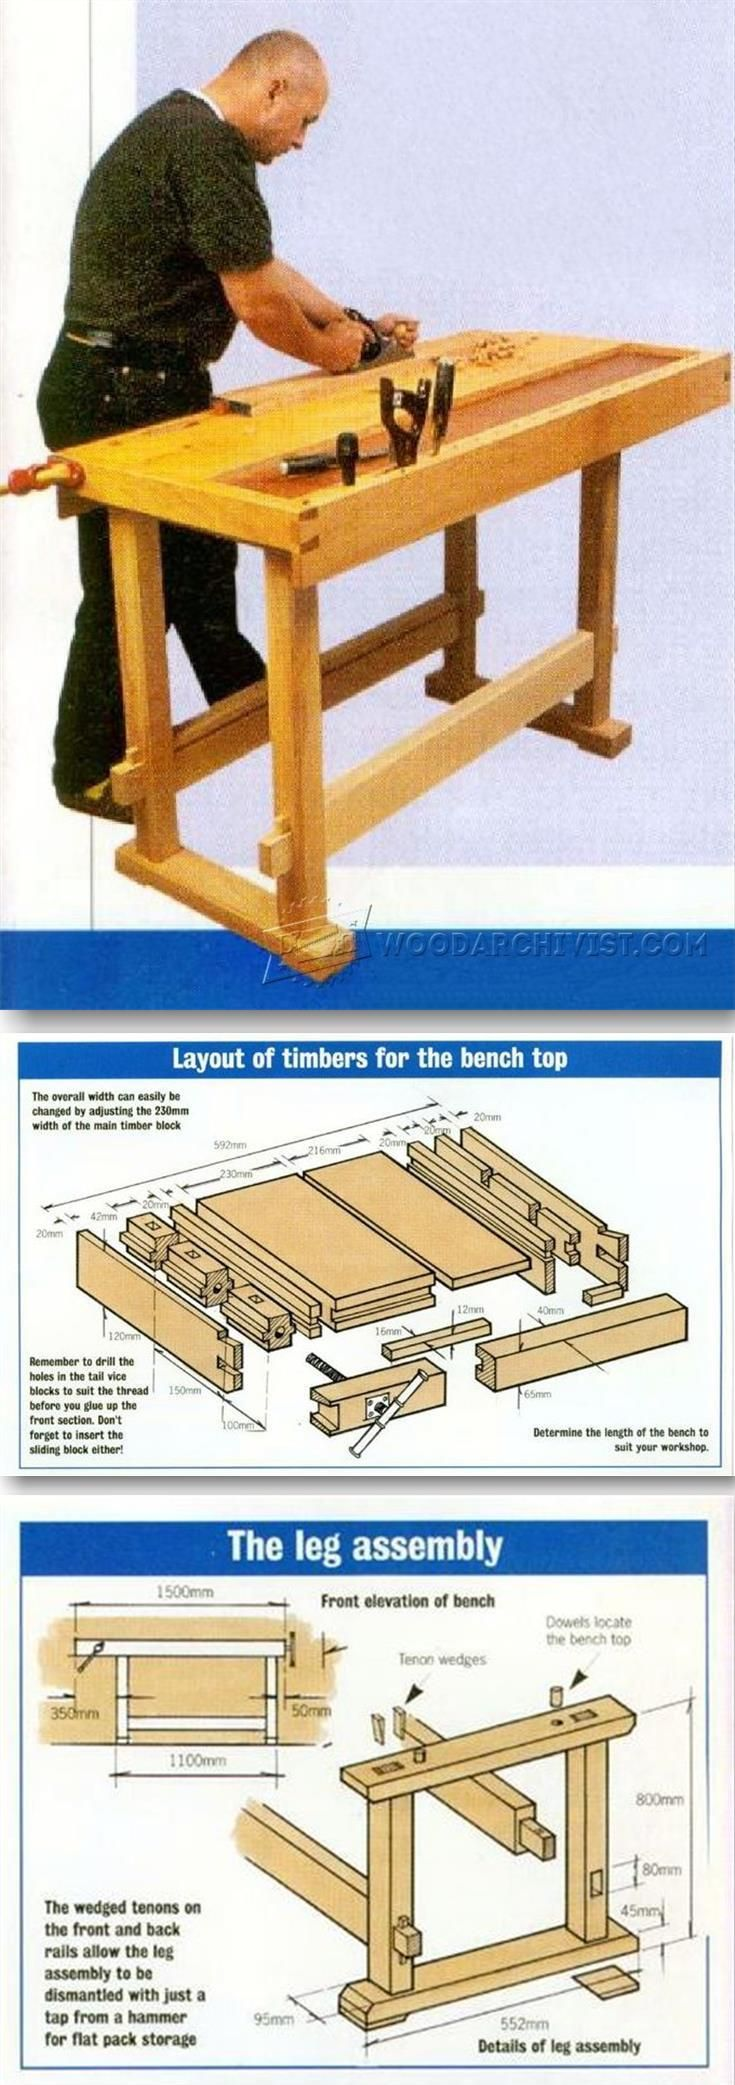 Cabinetmaker's Workbench Plans - Workshop Solutions Projects, Tips and Tricks | WoodArchivist.com